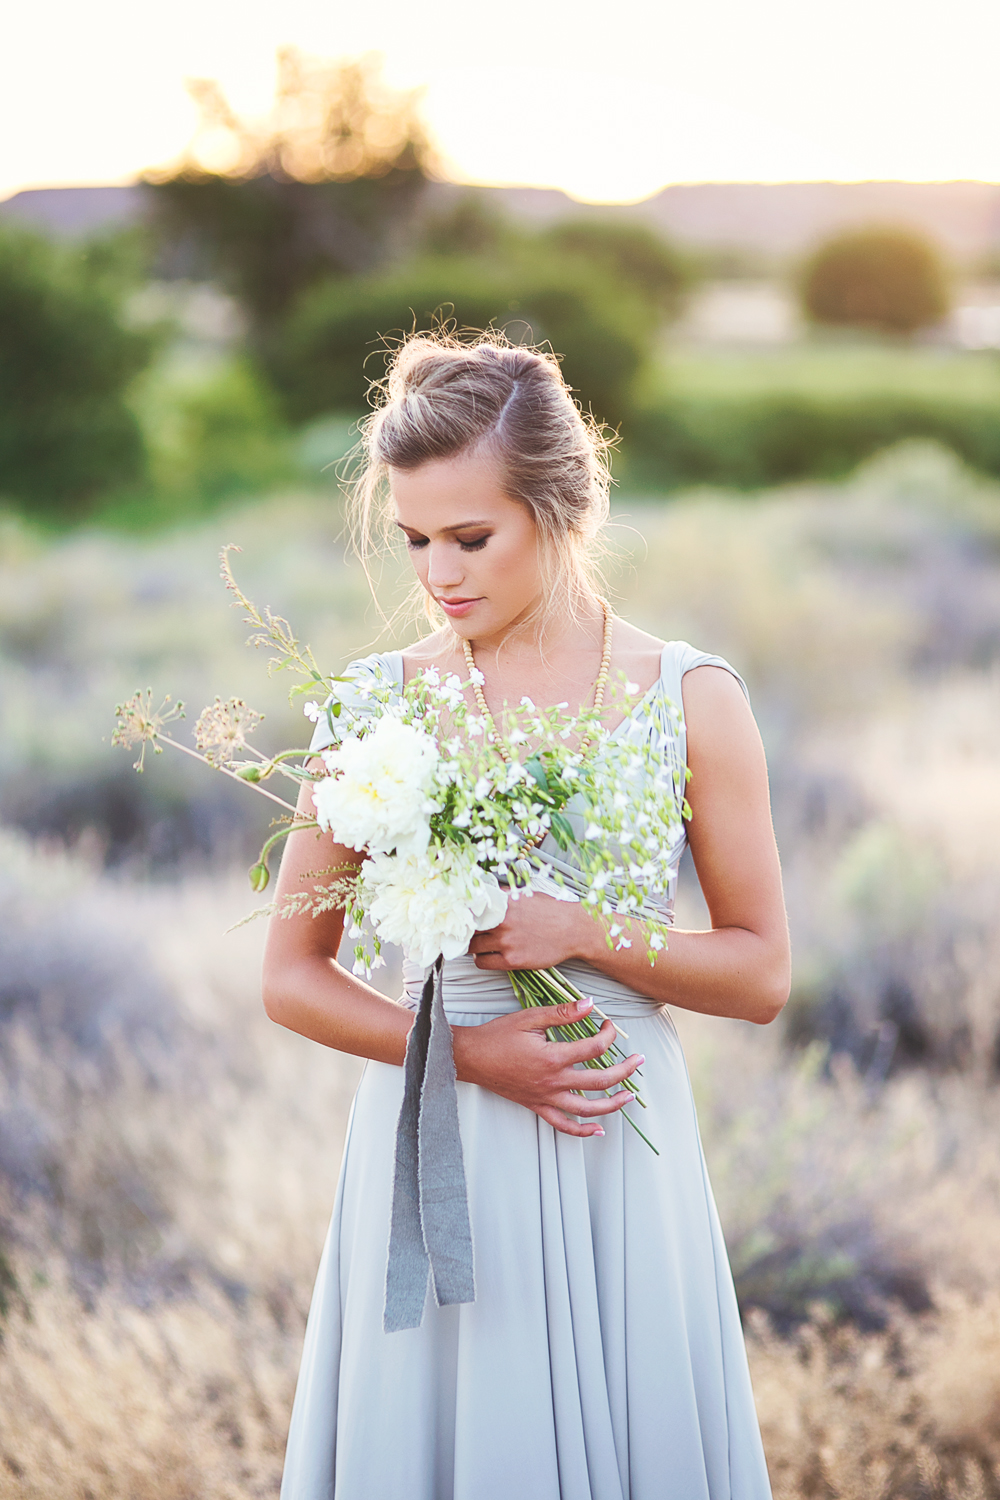 Liz Anne Photography | Wabi Sabi Wedding Inspiration_43.jpg